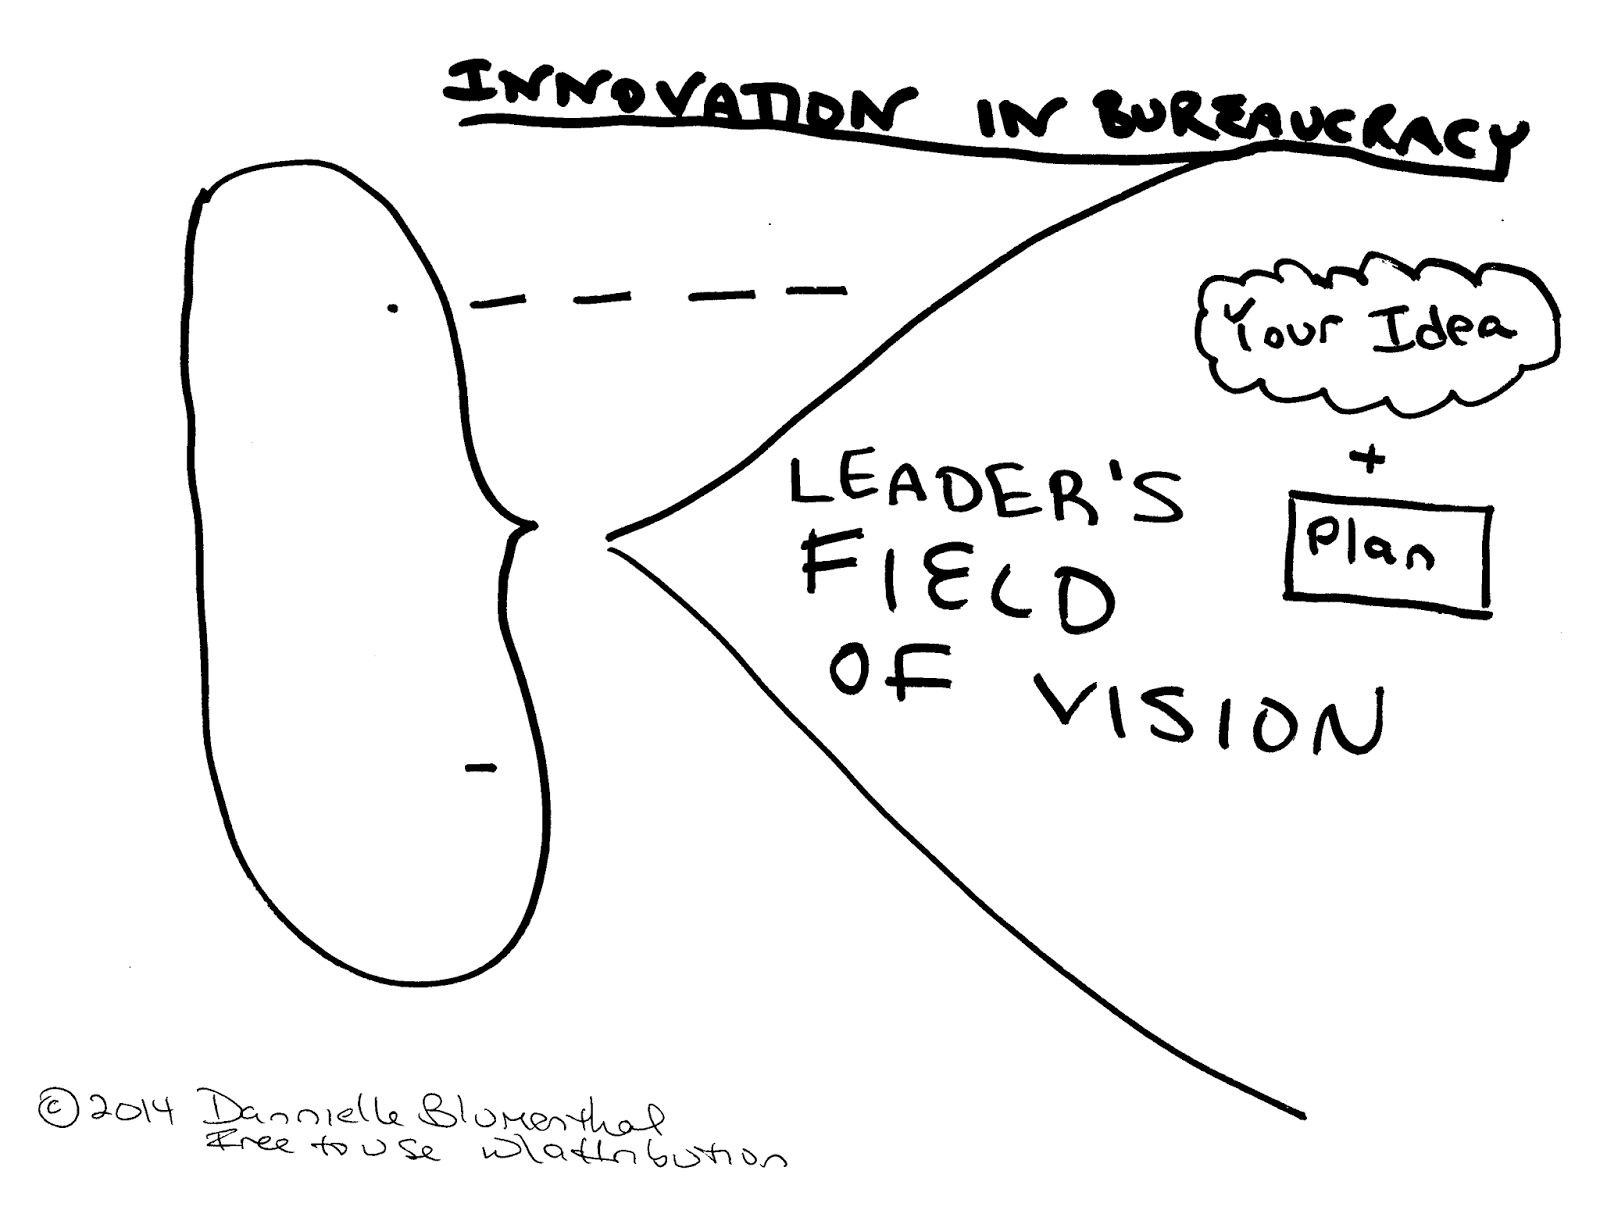 How To Get Your Innovation Moving In A Bureaucracy: Leverage The Leader's Field Of Vision